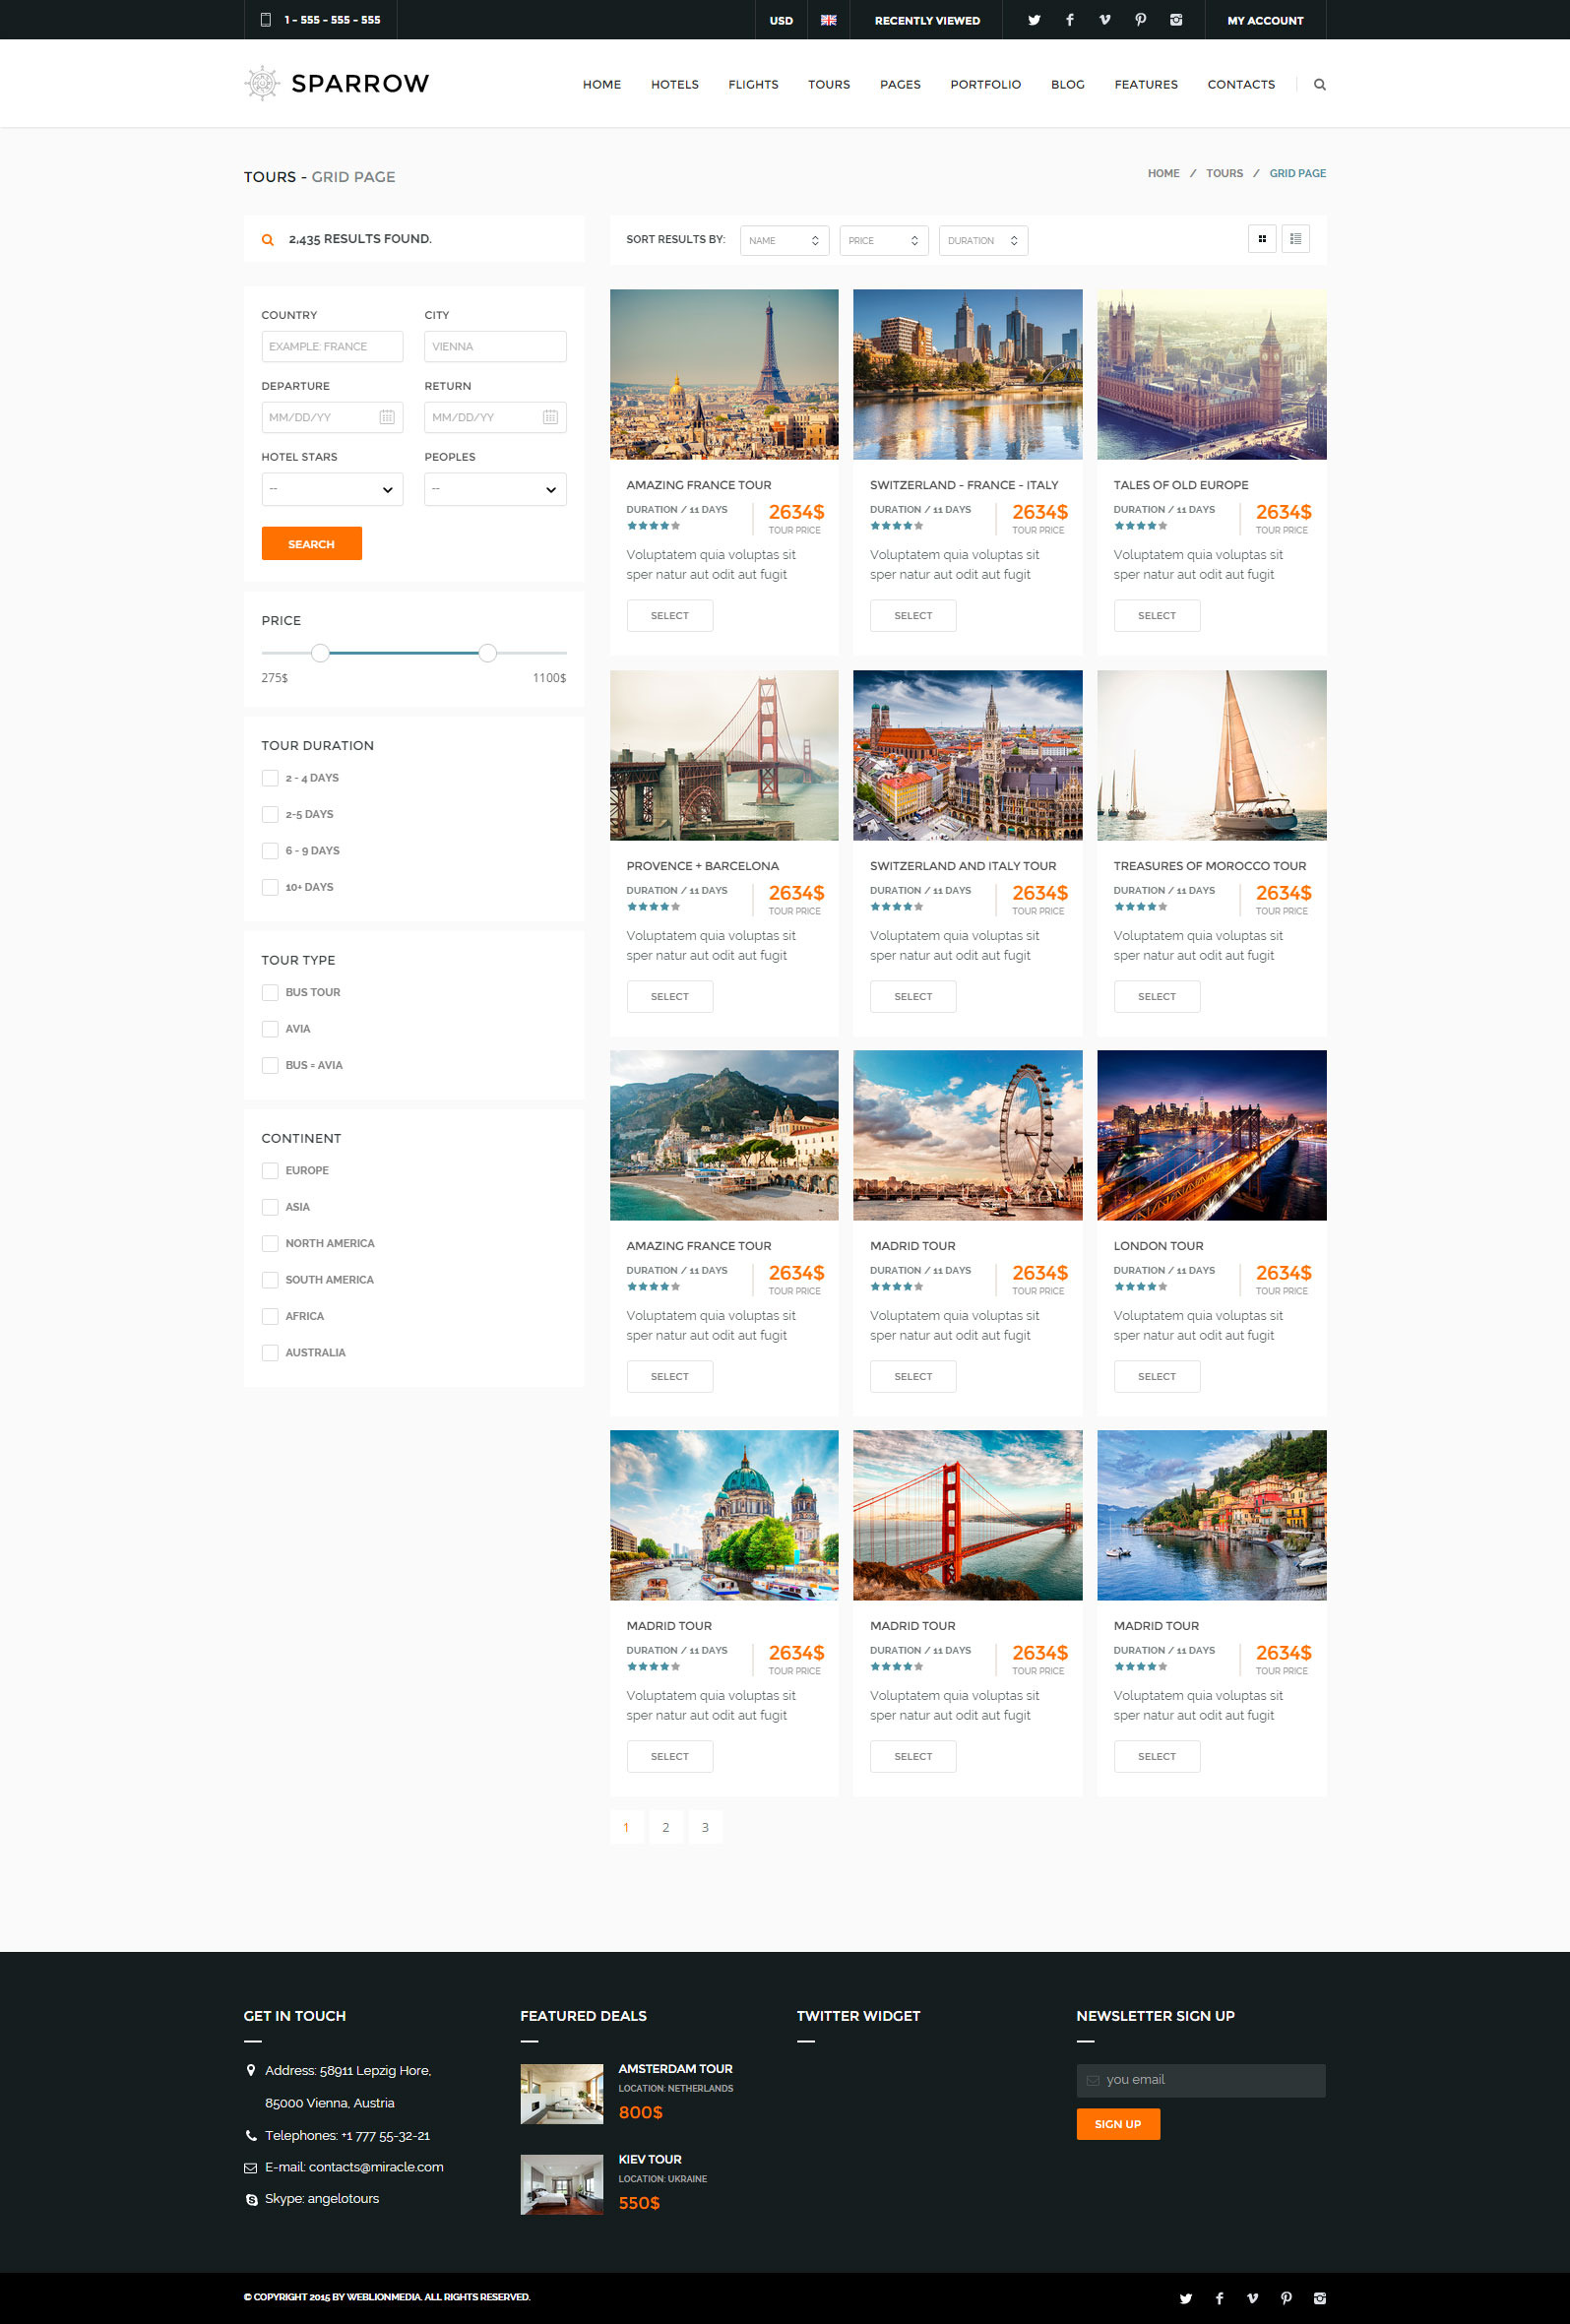 Screenshots 20 Tours Simple Style Jpg 21 Booking Complete Details Page